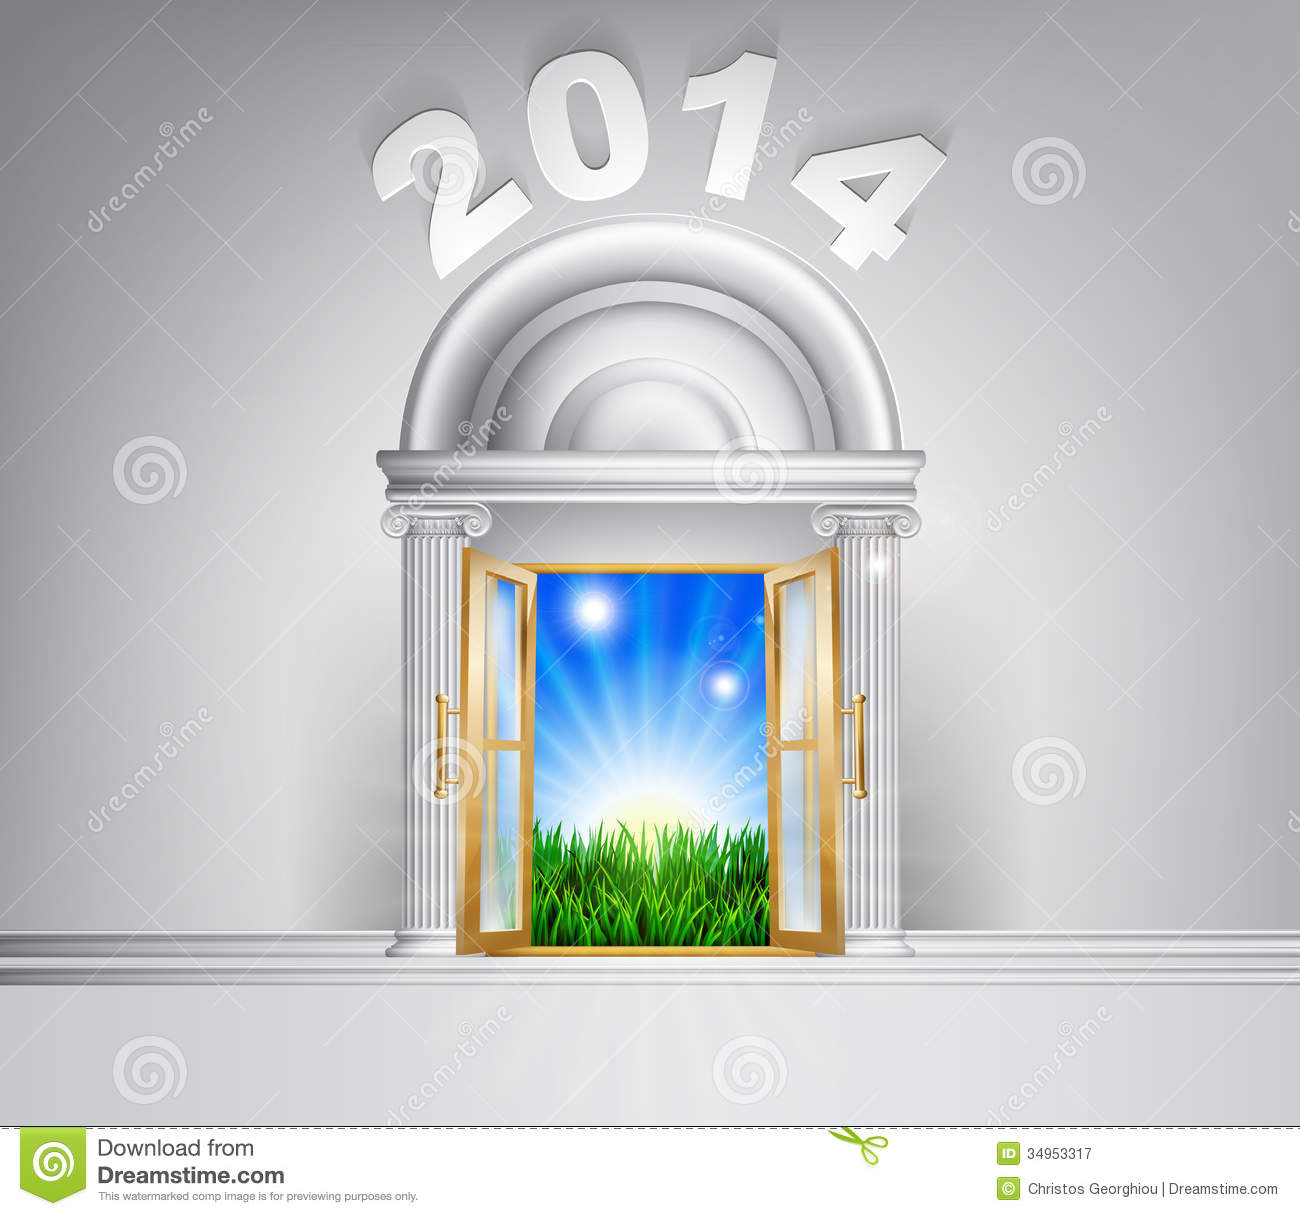 New Year Hope Door Concept 2014 Stock Vector - Illustration of ...